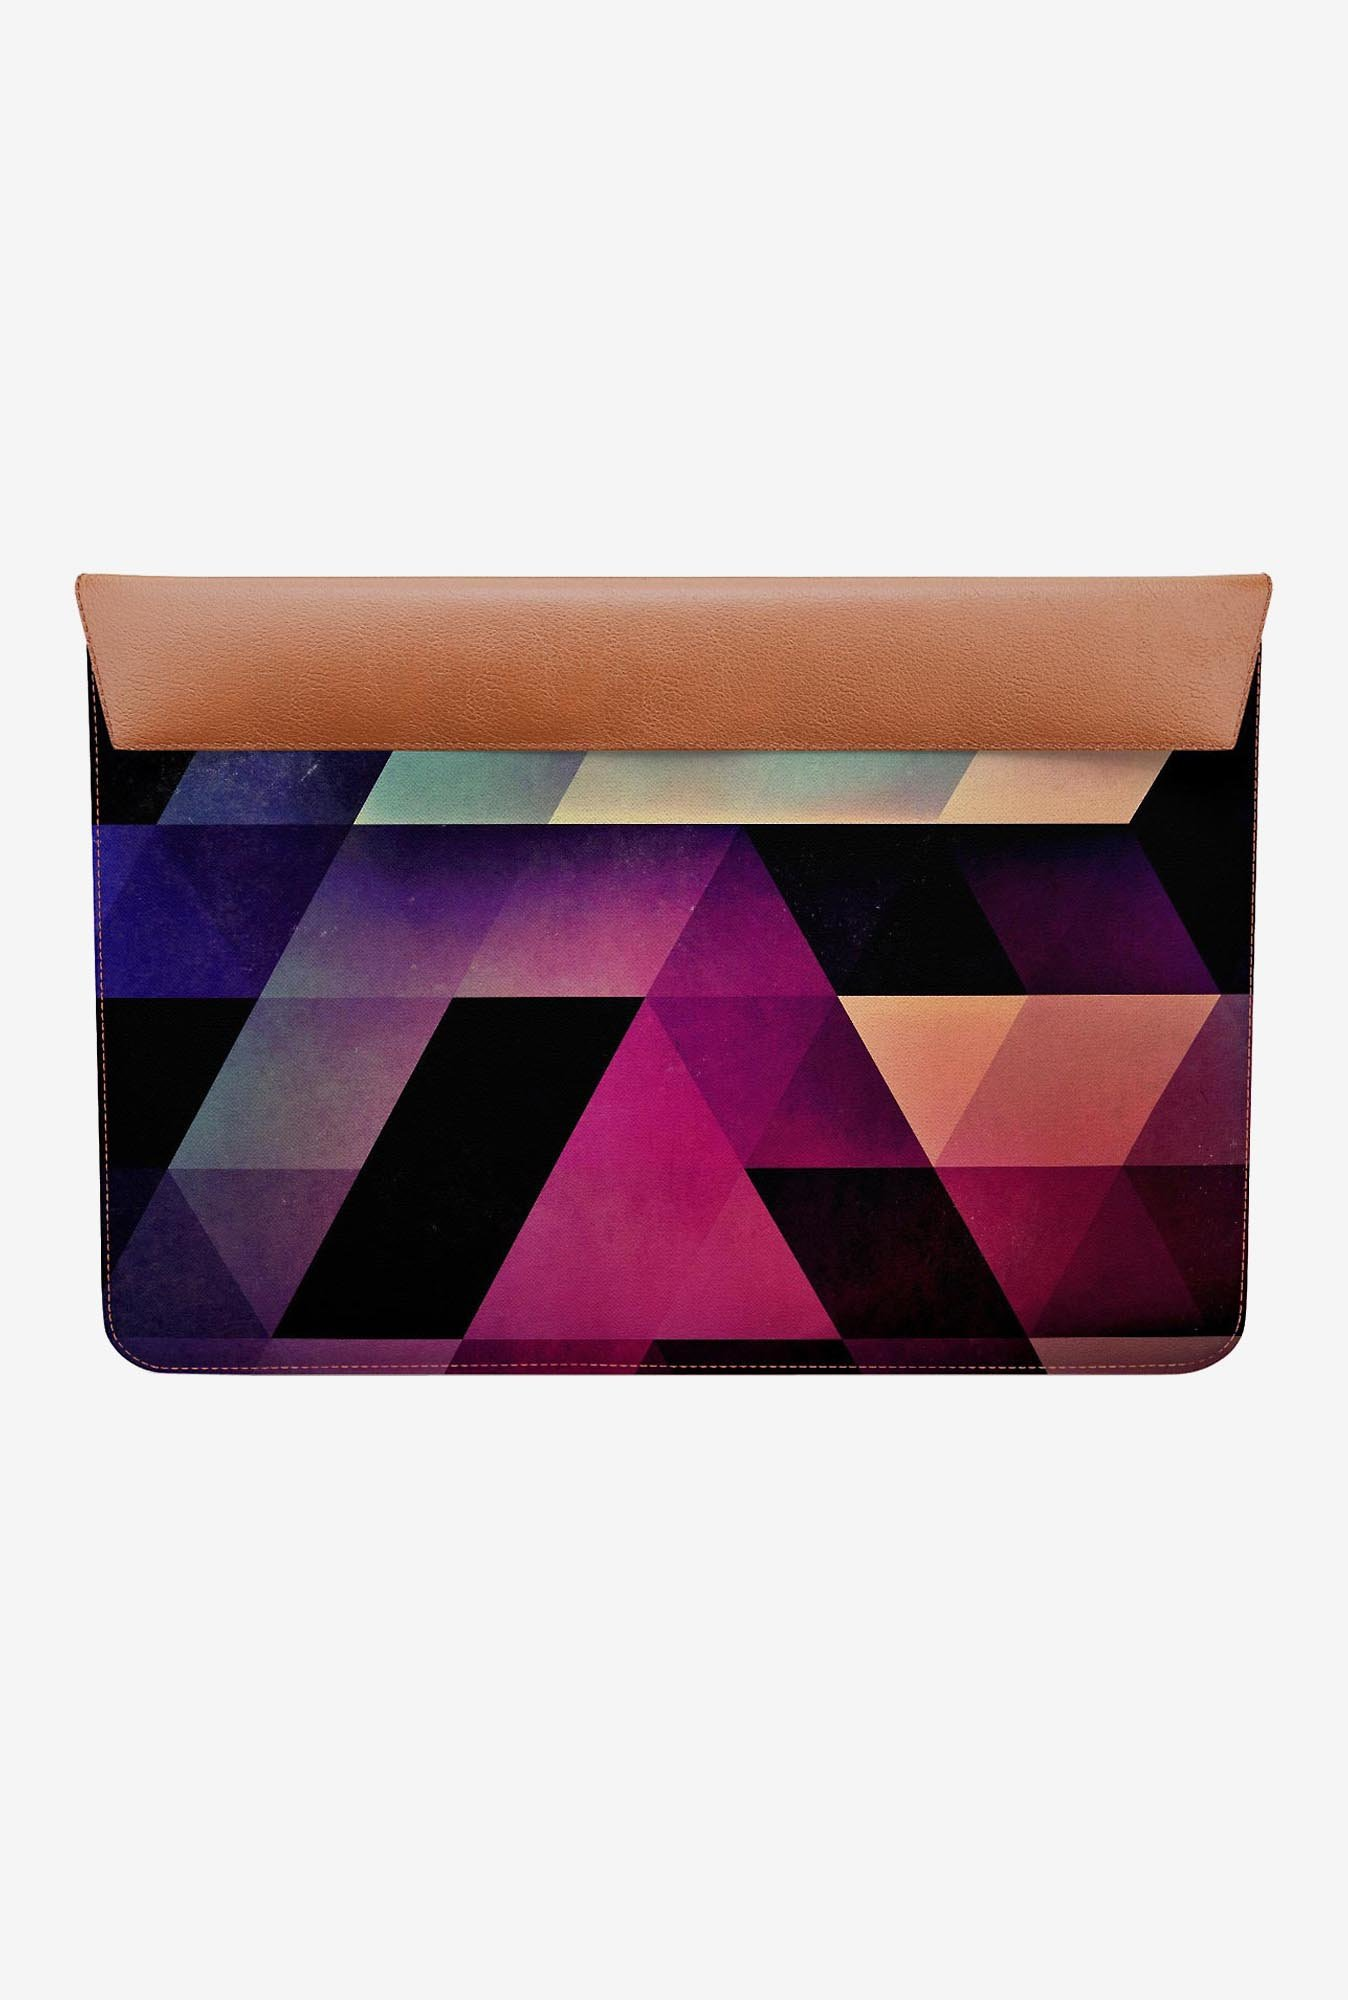 DailyObjects Snypdryyms Hrxtl Macbook Air 11 Envelope Sleeve